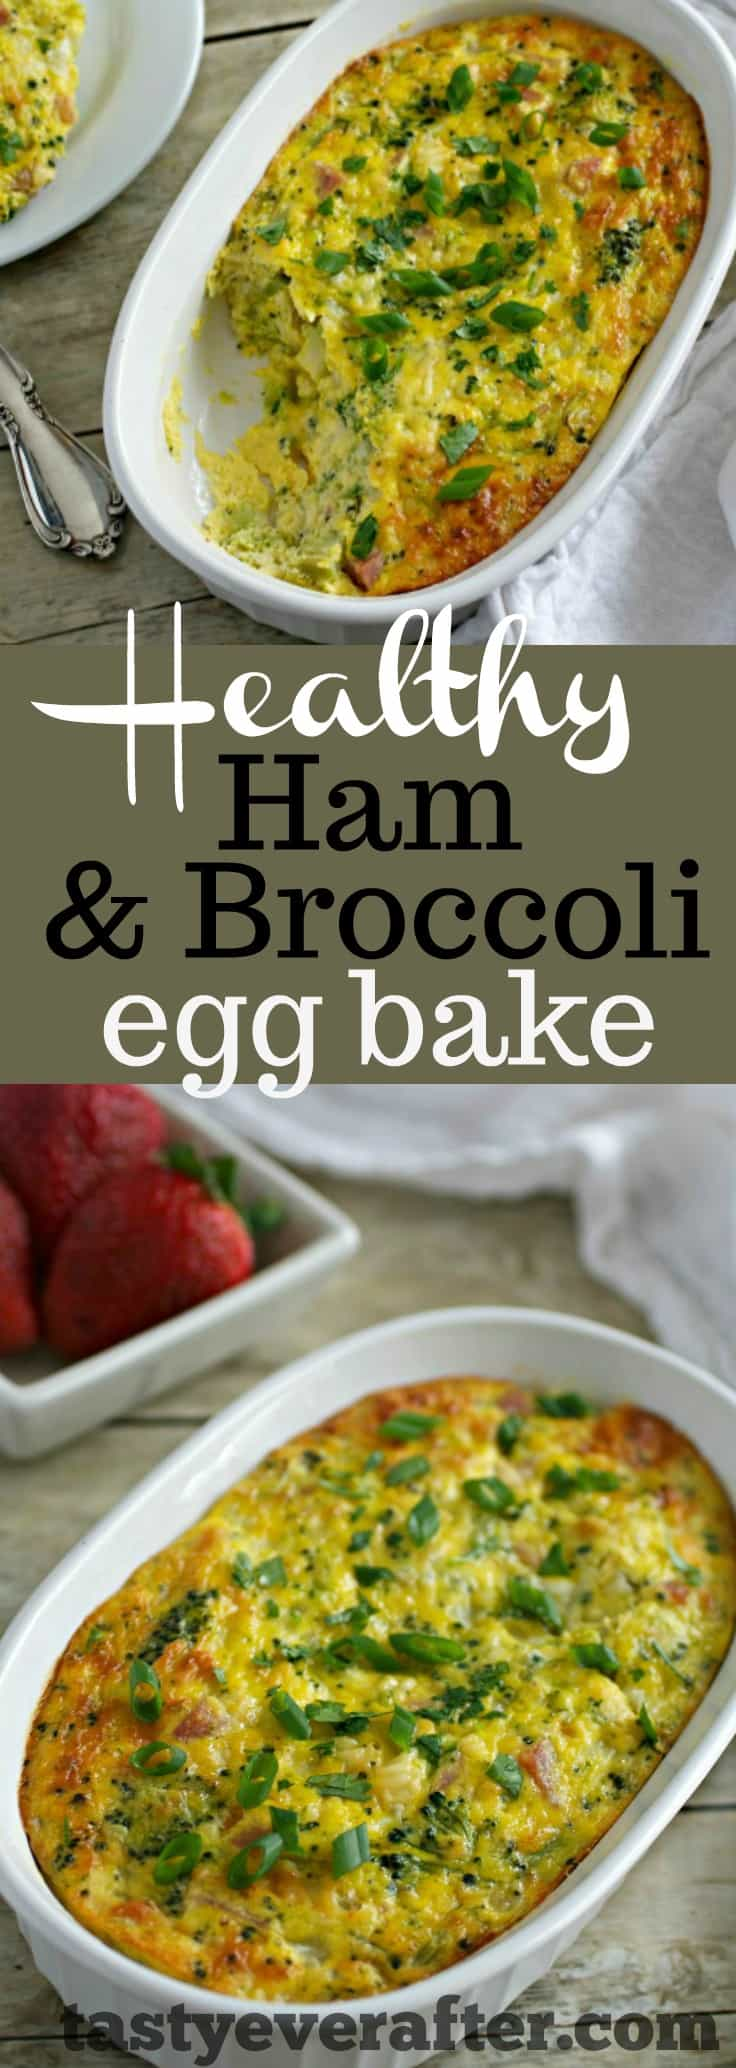 Healthy Ham and Broccoli Egg Bake Recipe